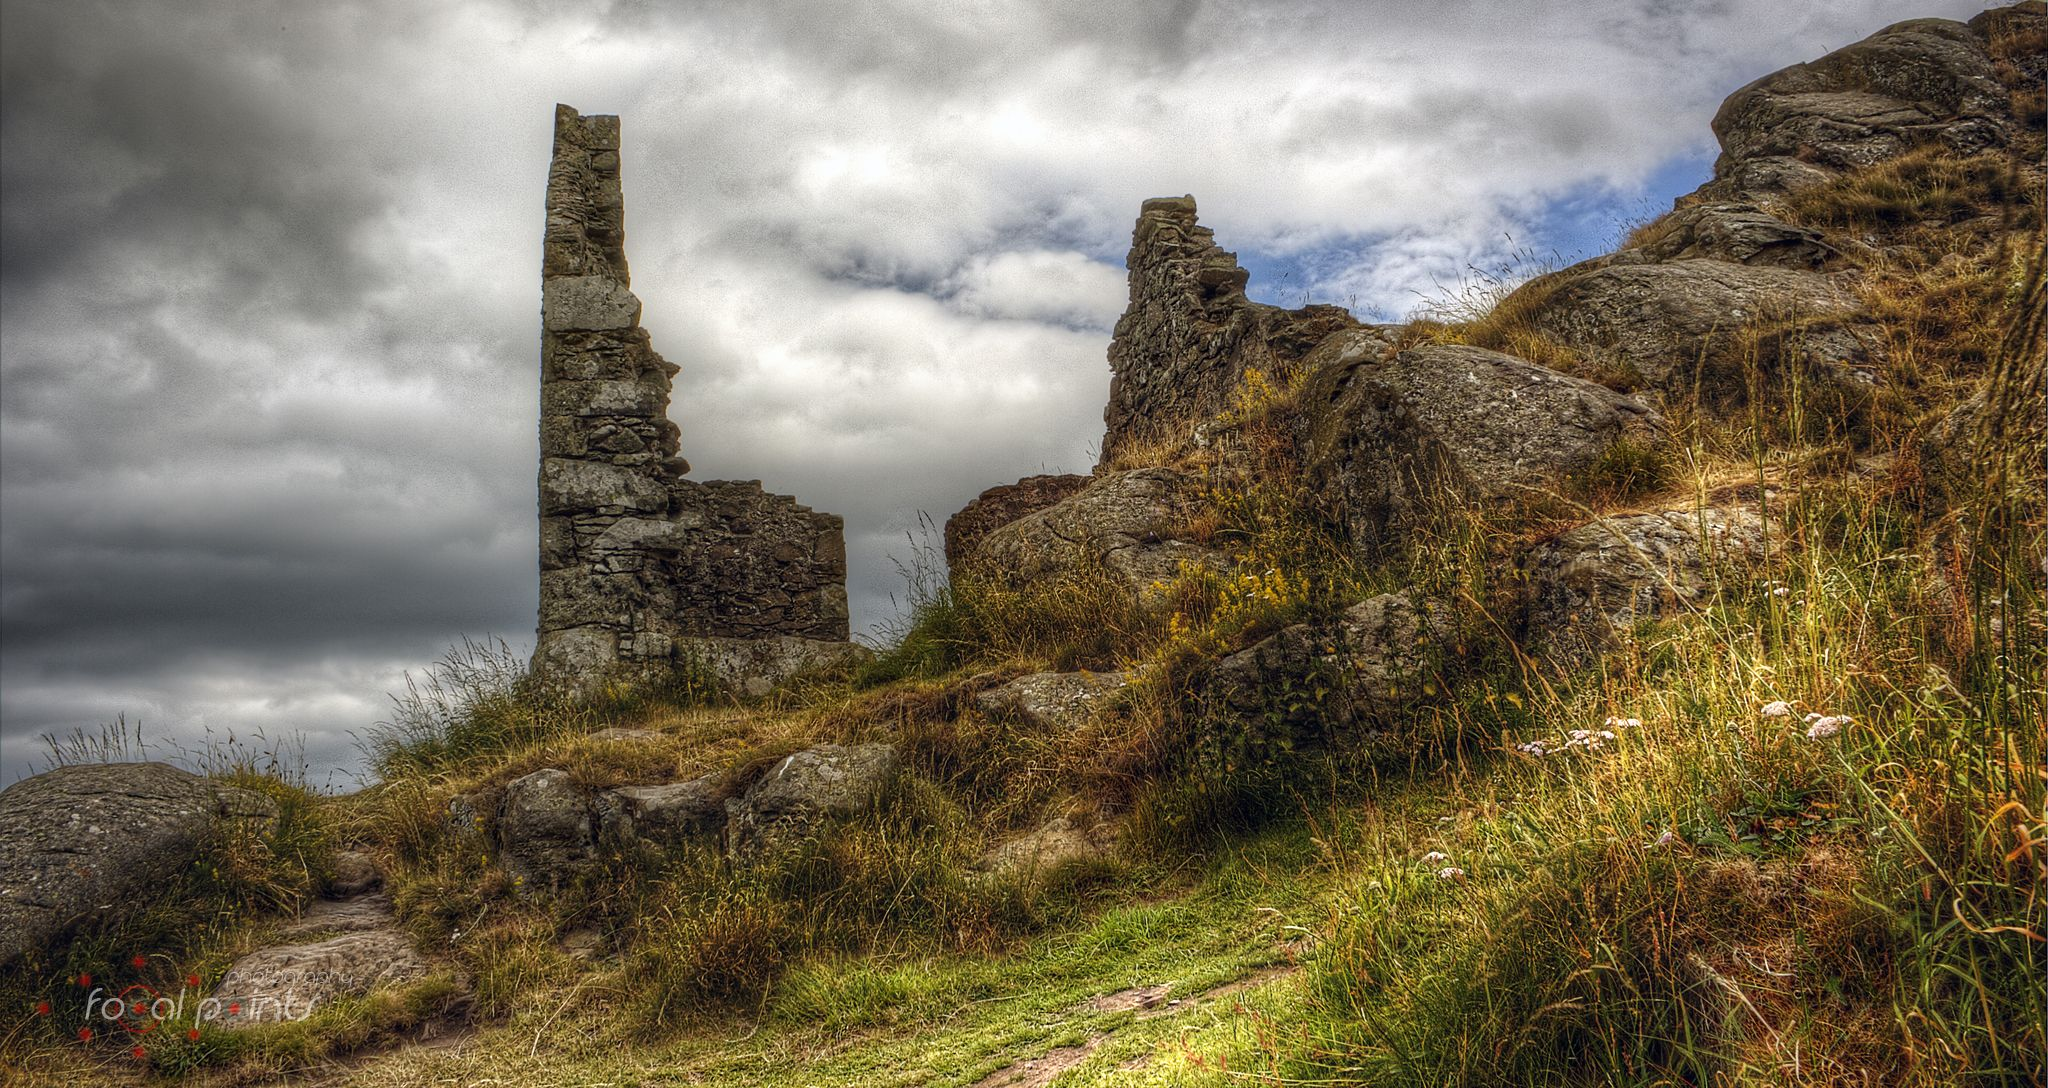 Berwick Law Hill Fort by martin.brand.75